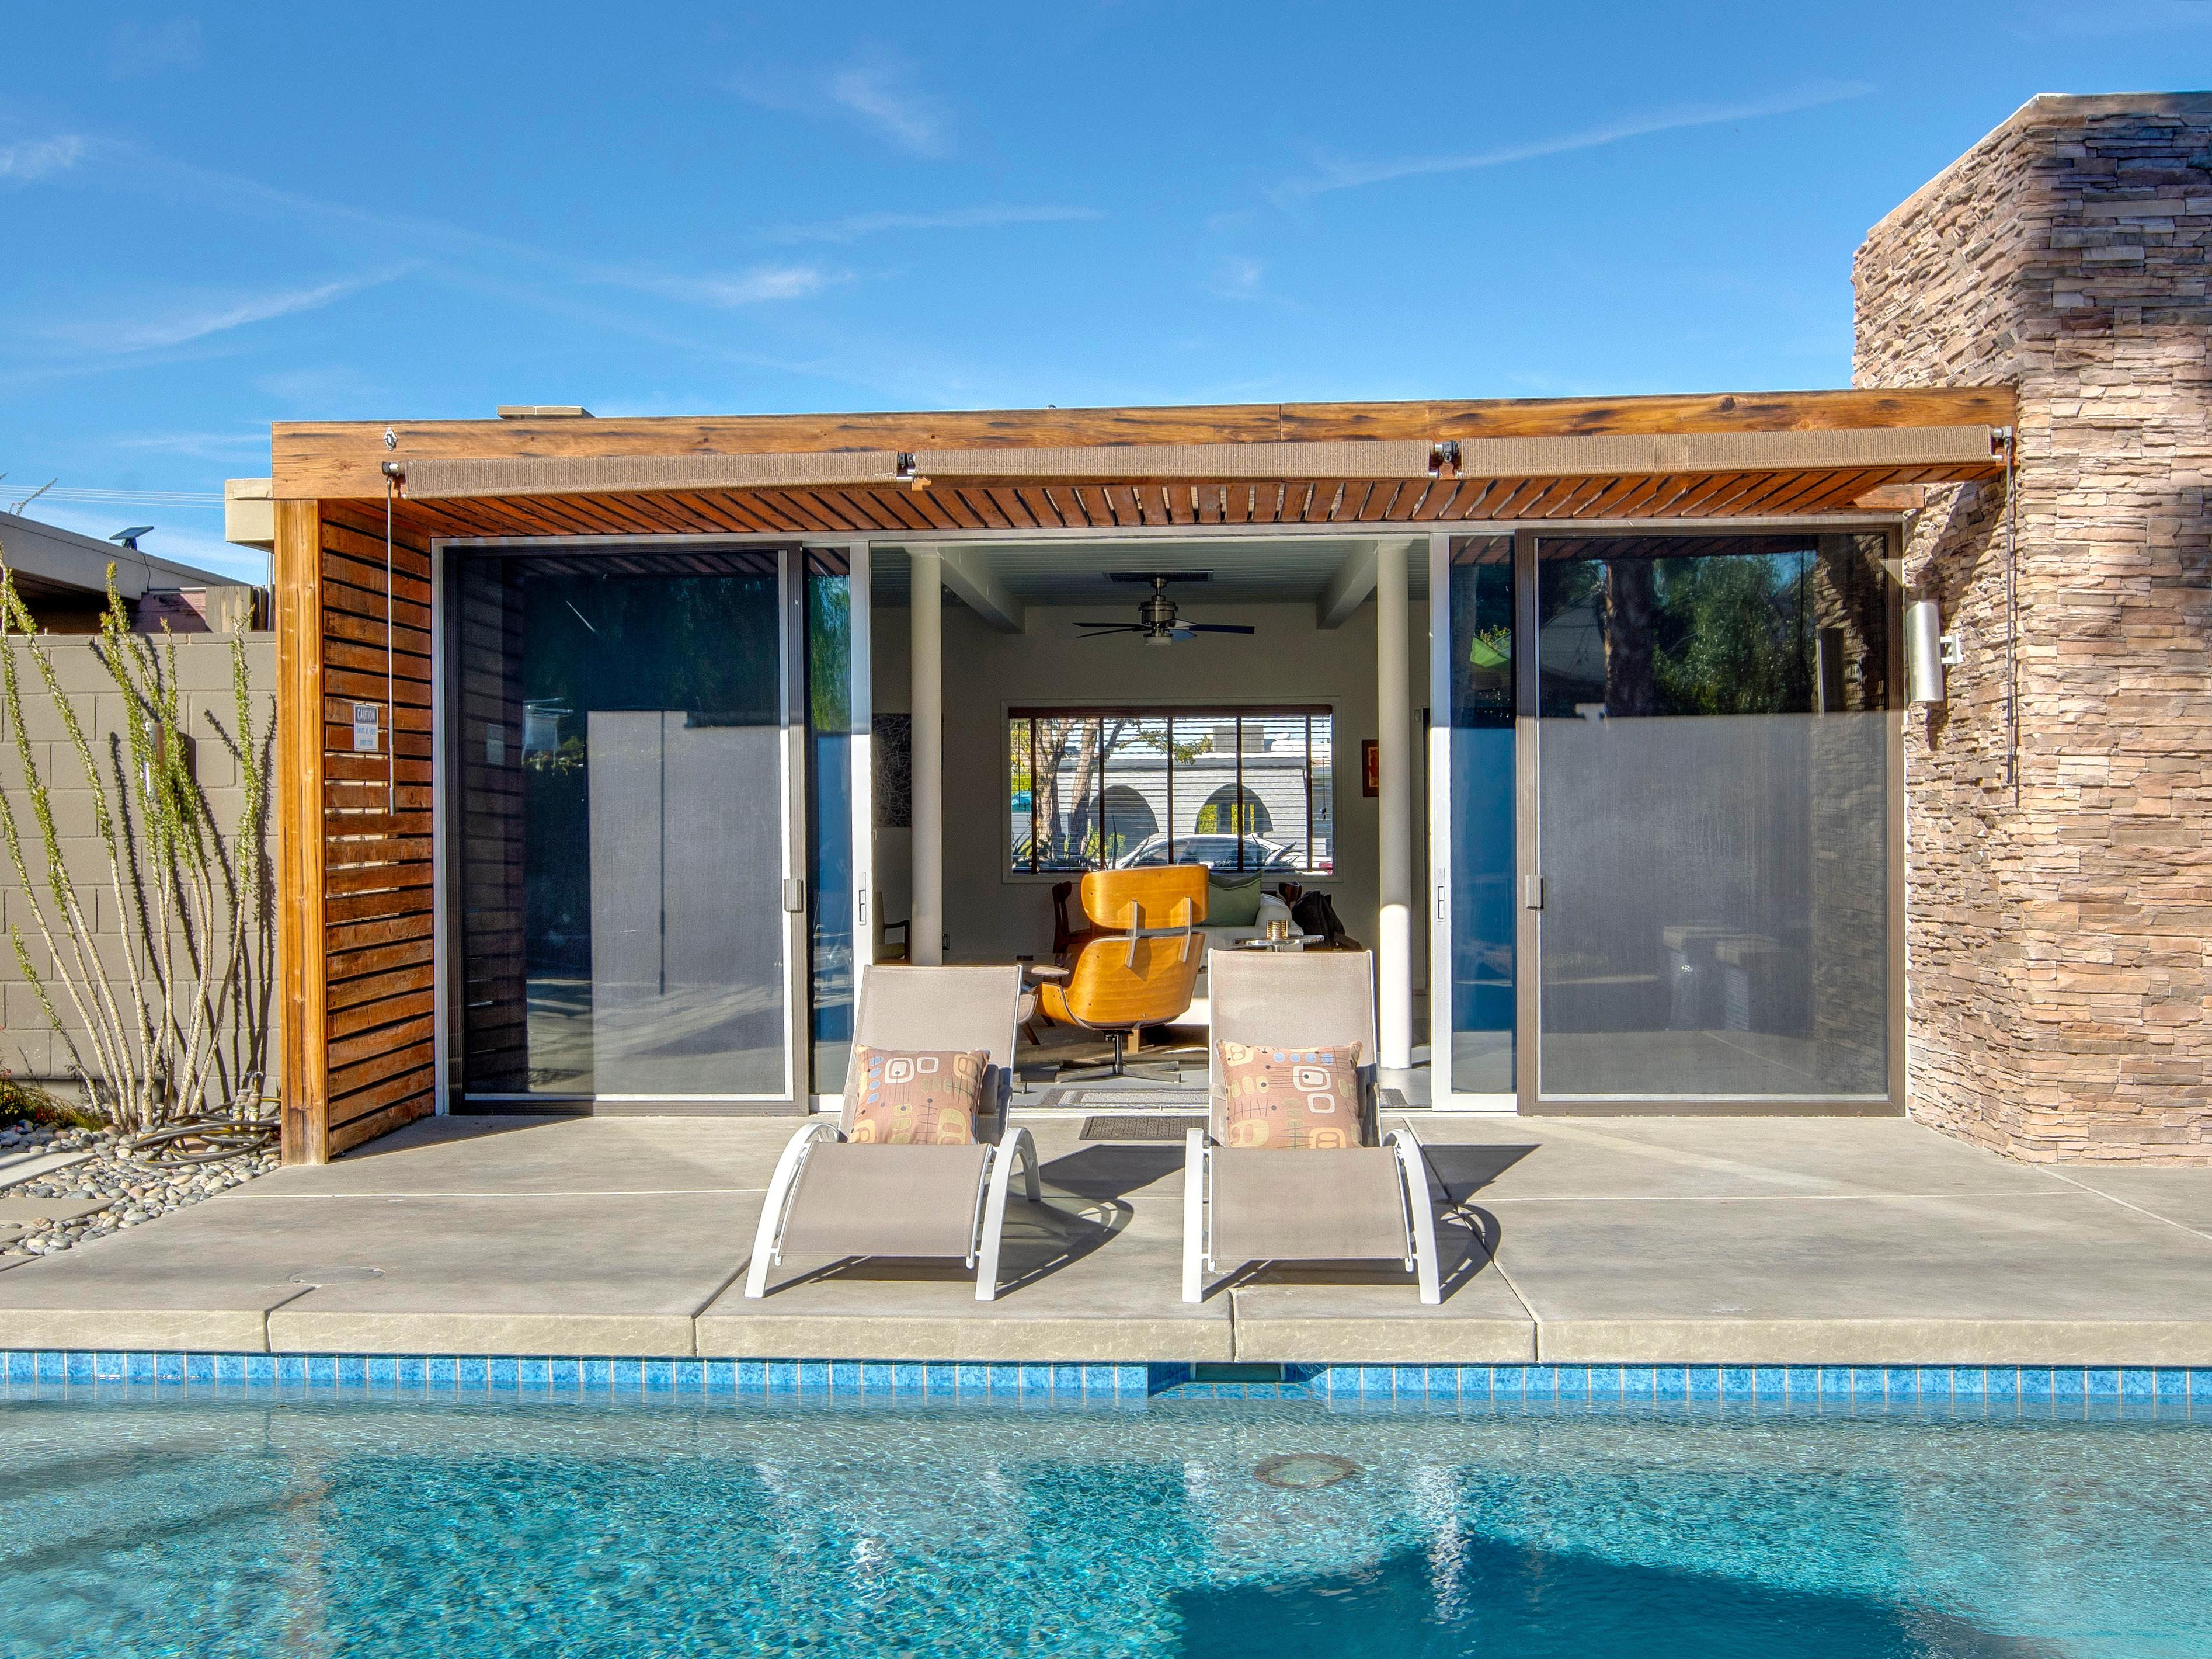 Property Image 2 - Vintage Chic Home with 50's Era Decor in Palm Springs